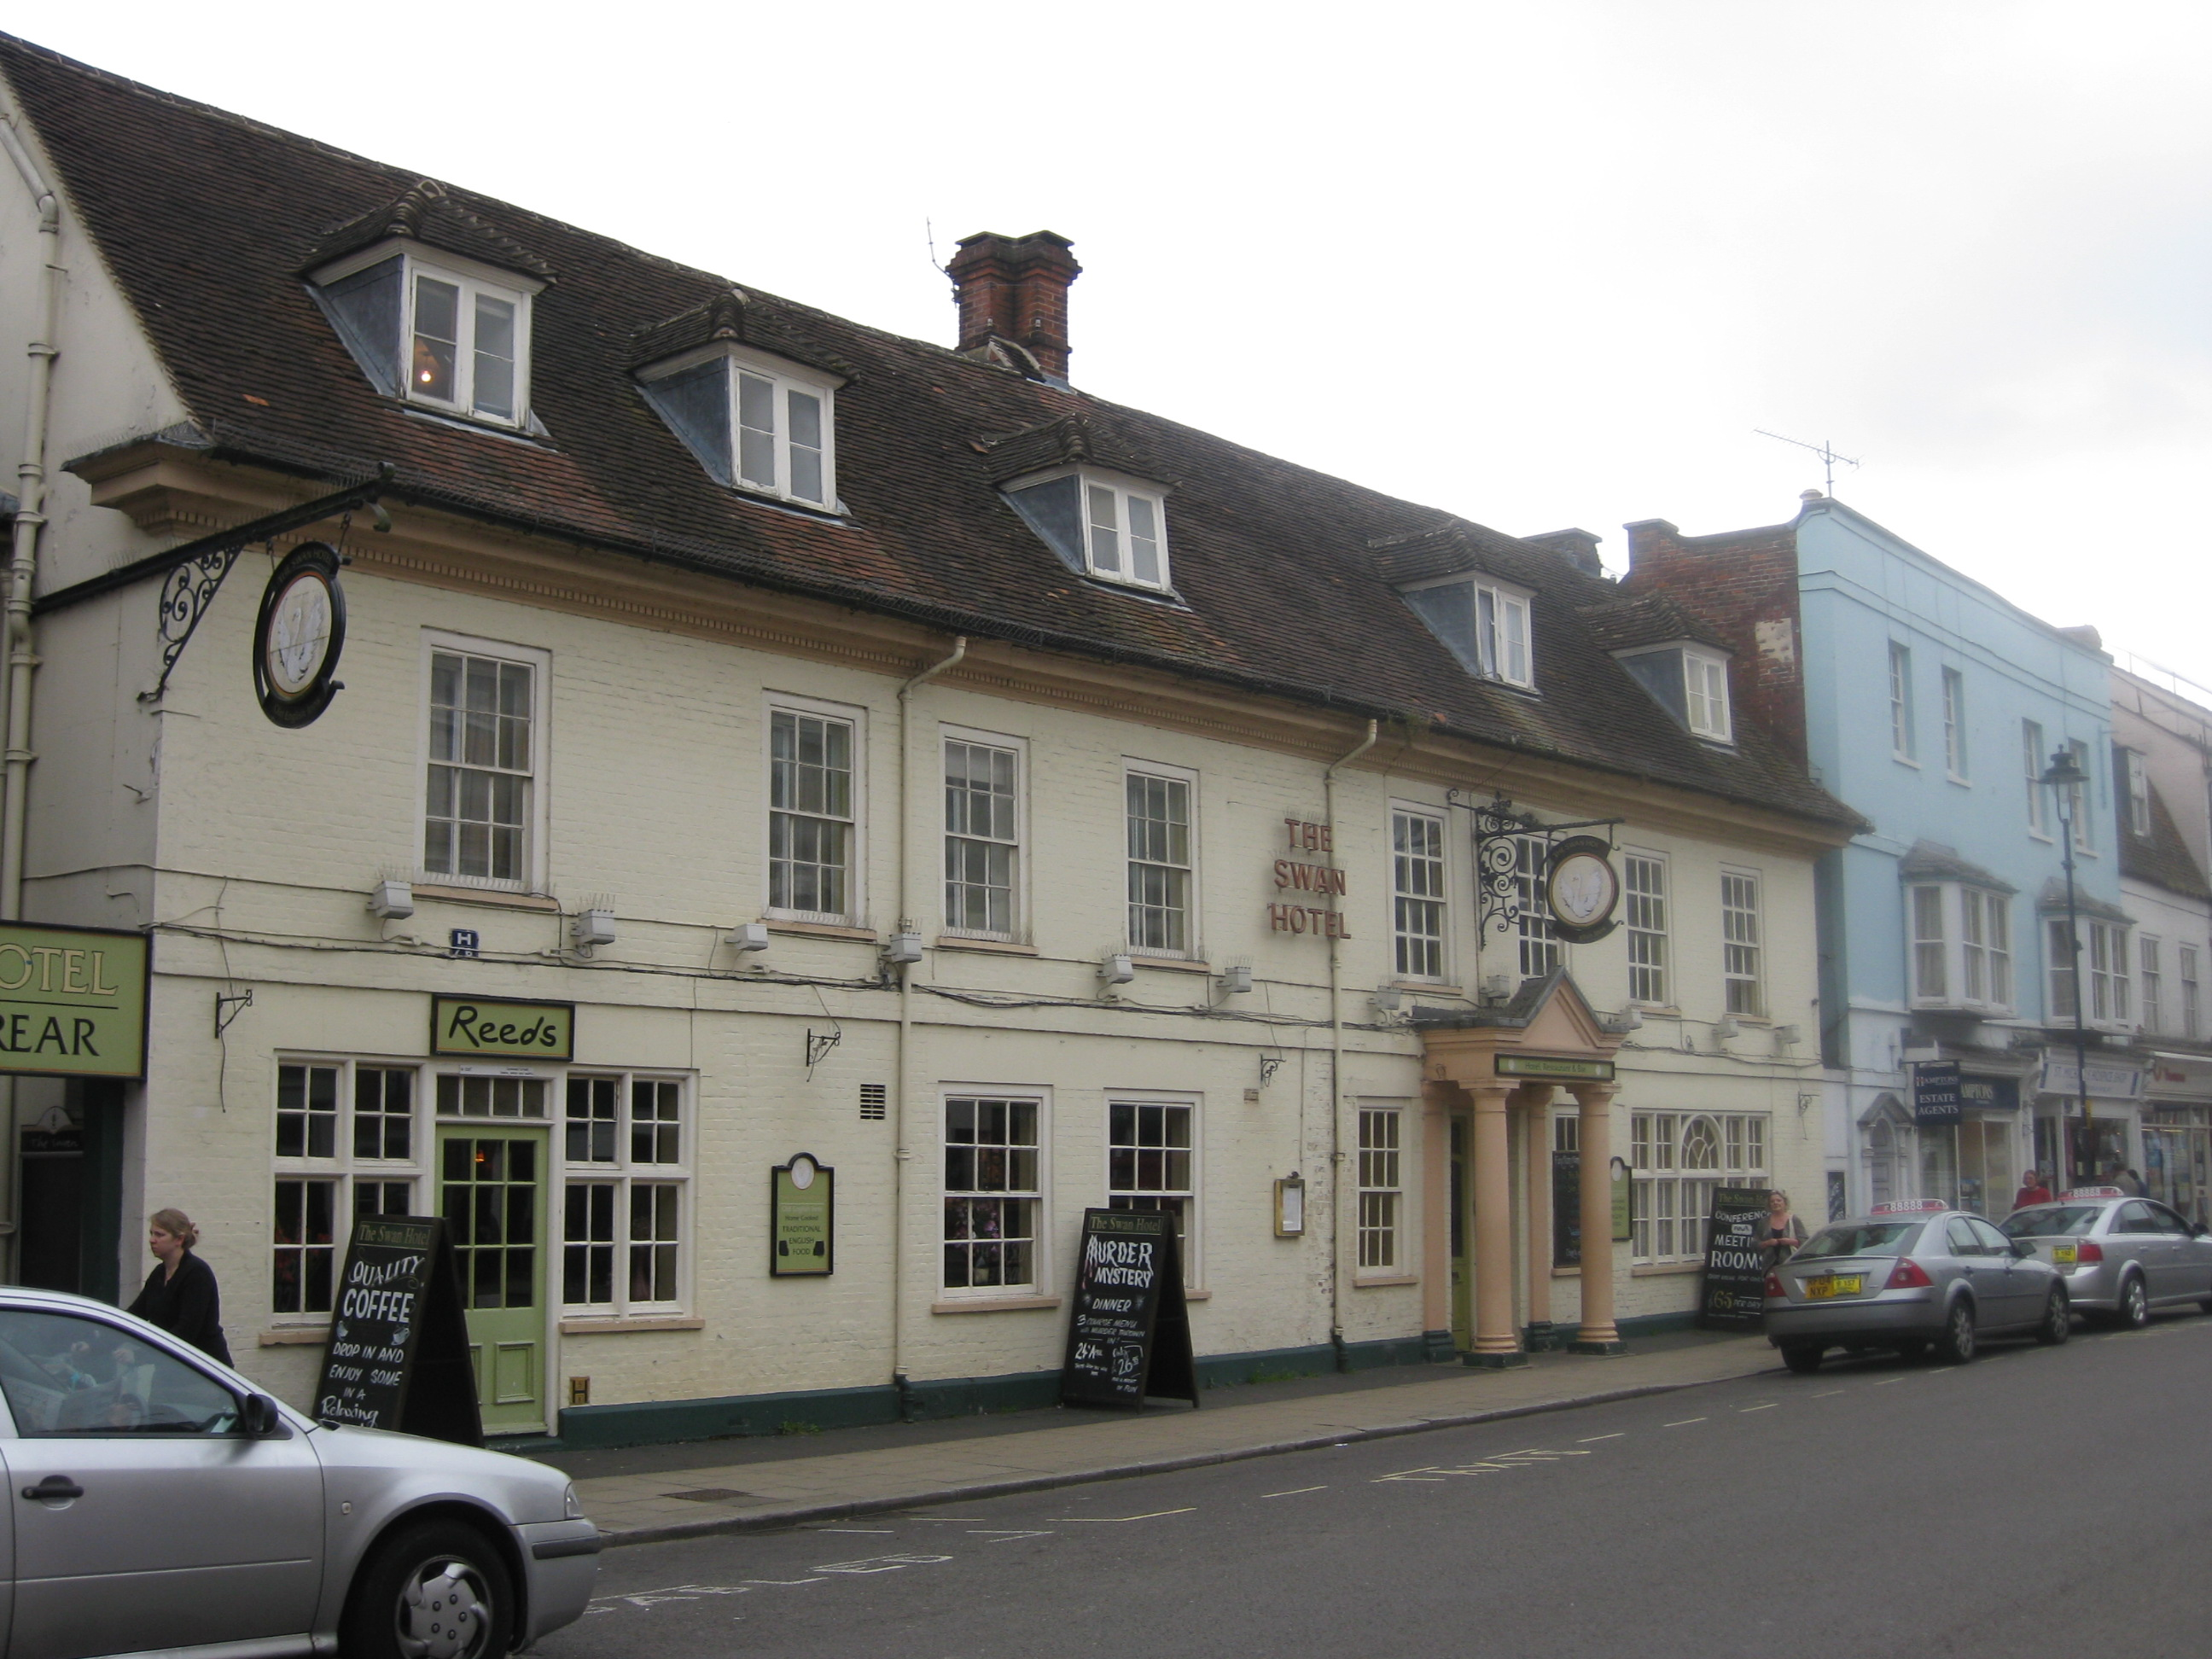 The Swan Inn of Alton